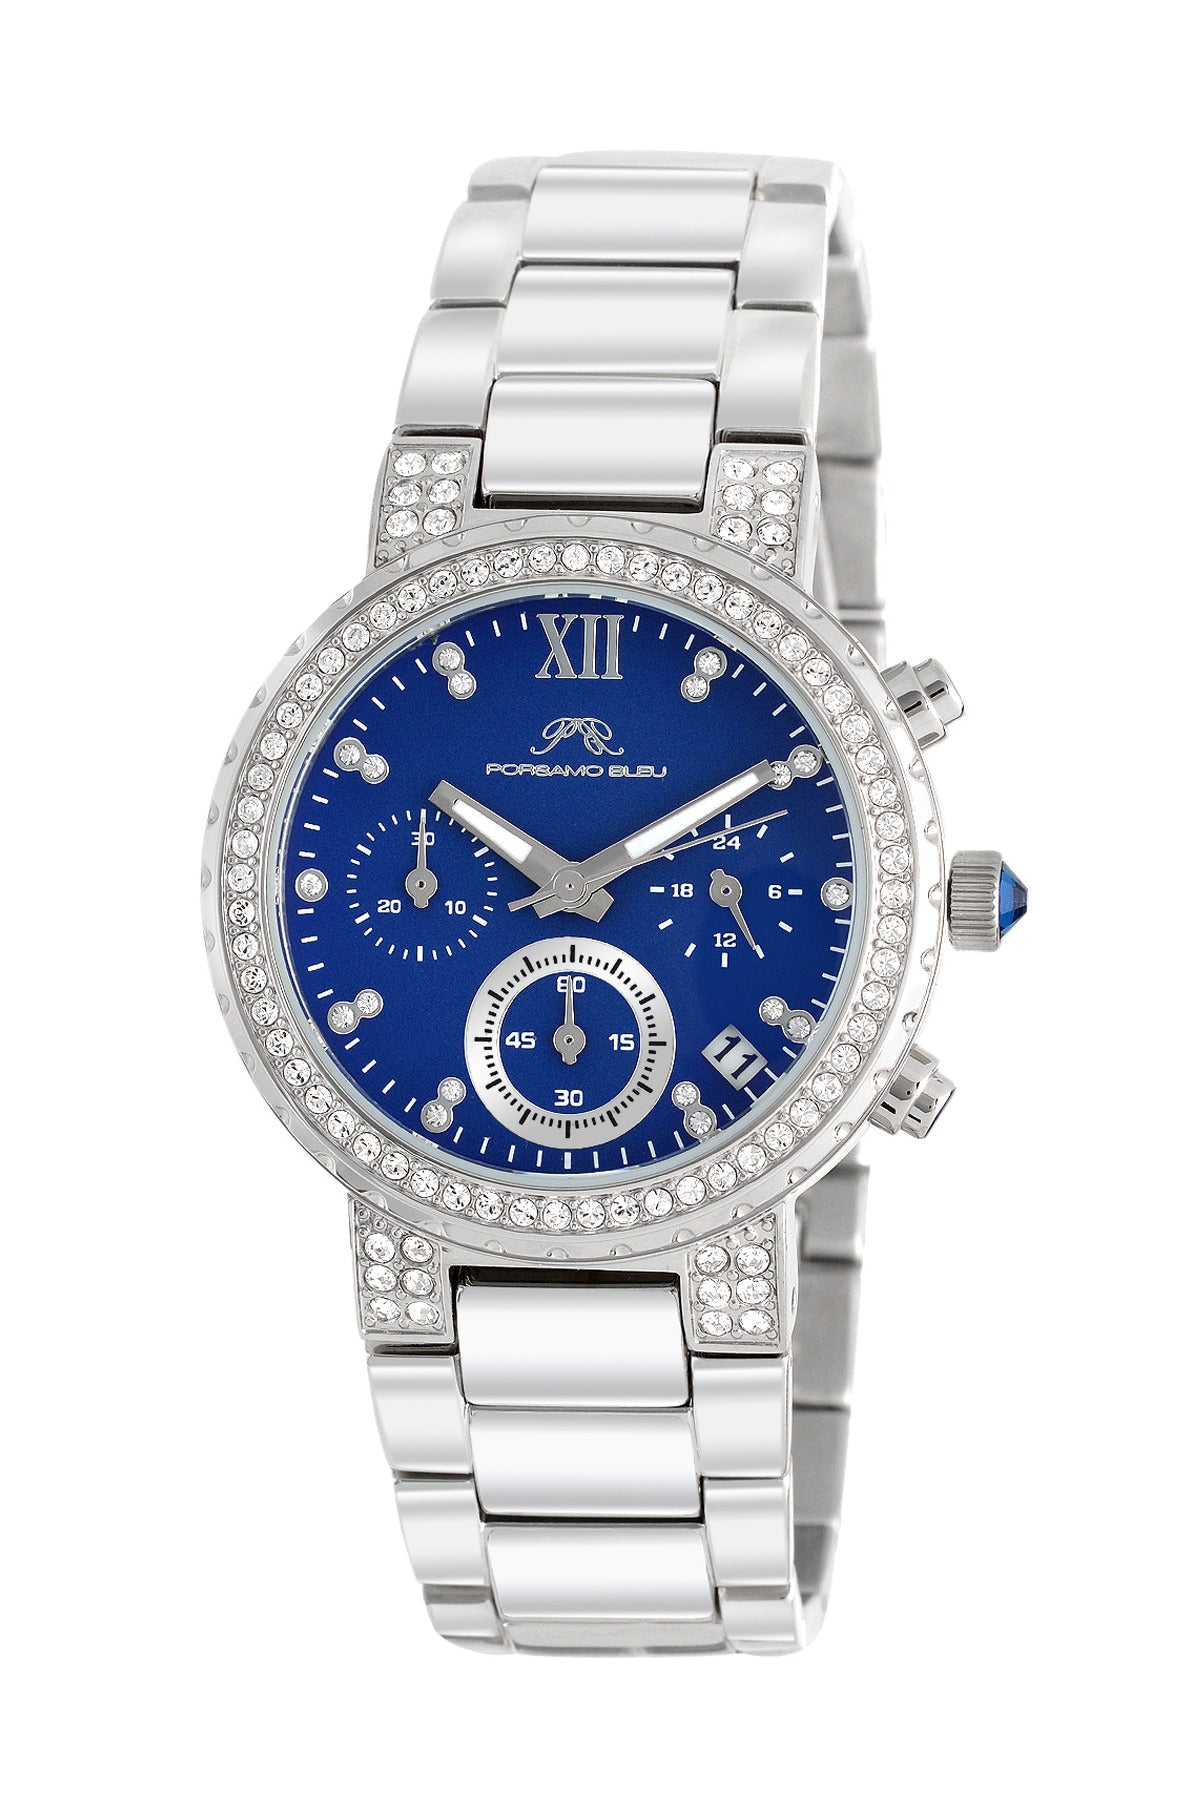 Porsamo Bleu Pilar luxury chronograph women's stainless steel watch, silver, blue 502APIS